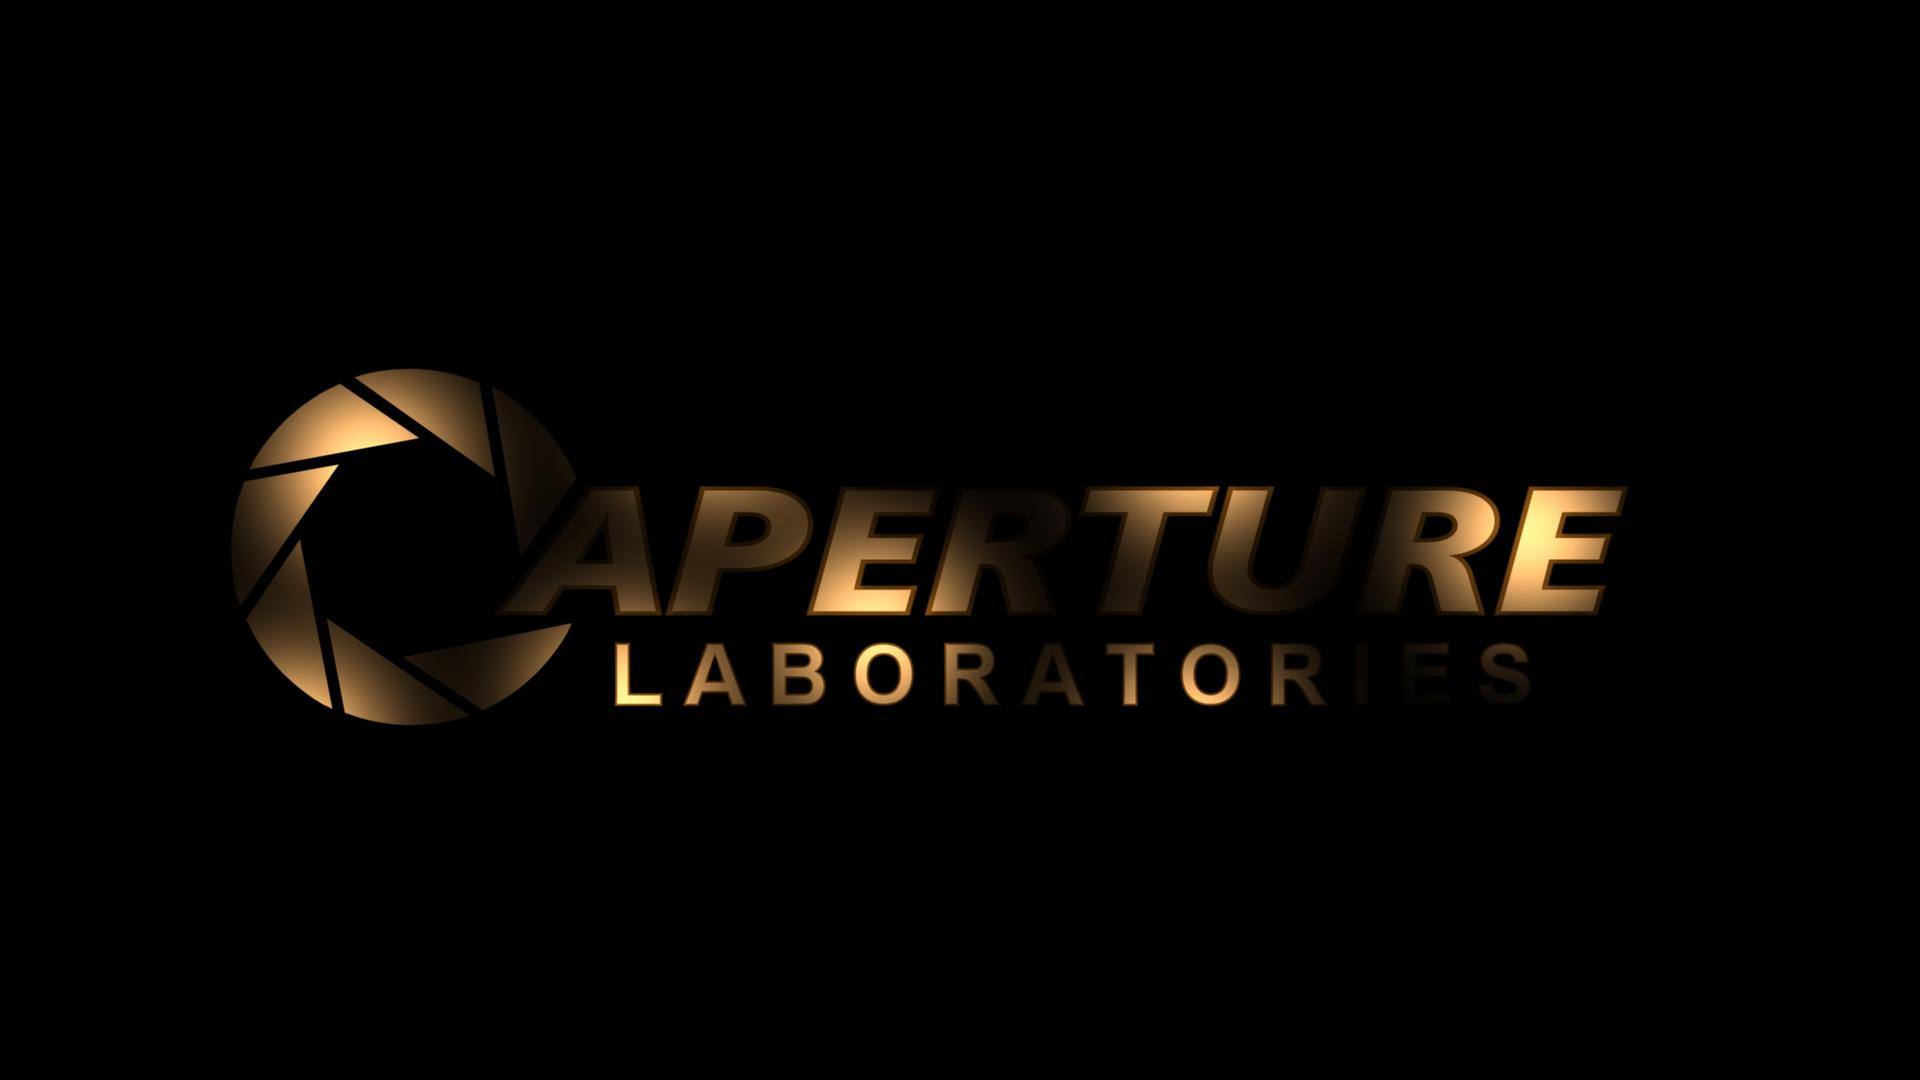 Aperture Science Wallpaper 3 by striker109 on DeviantArt